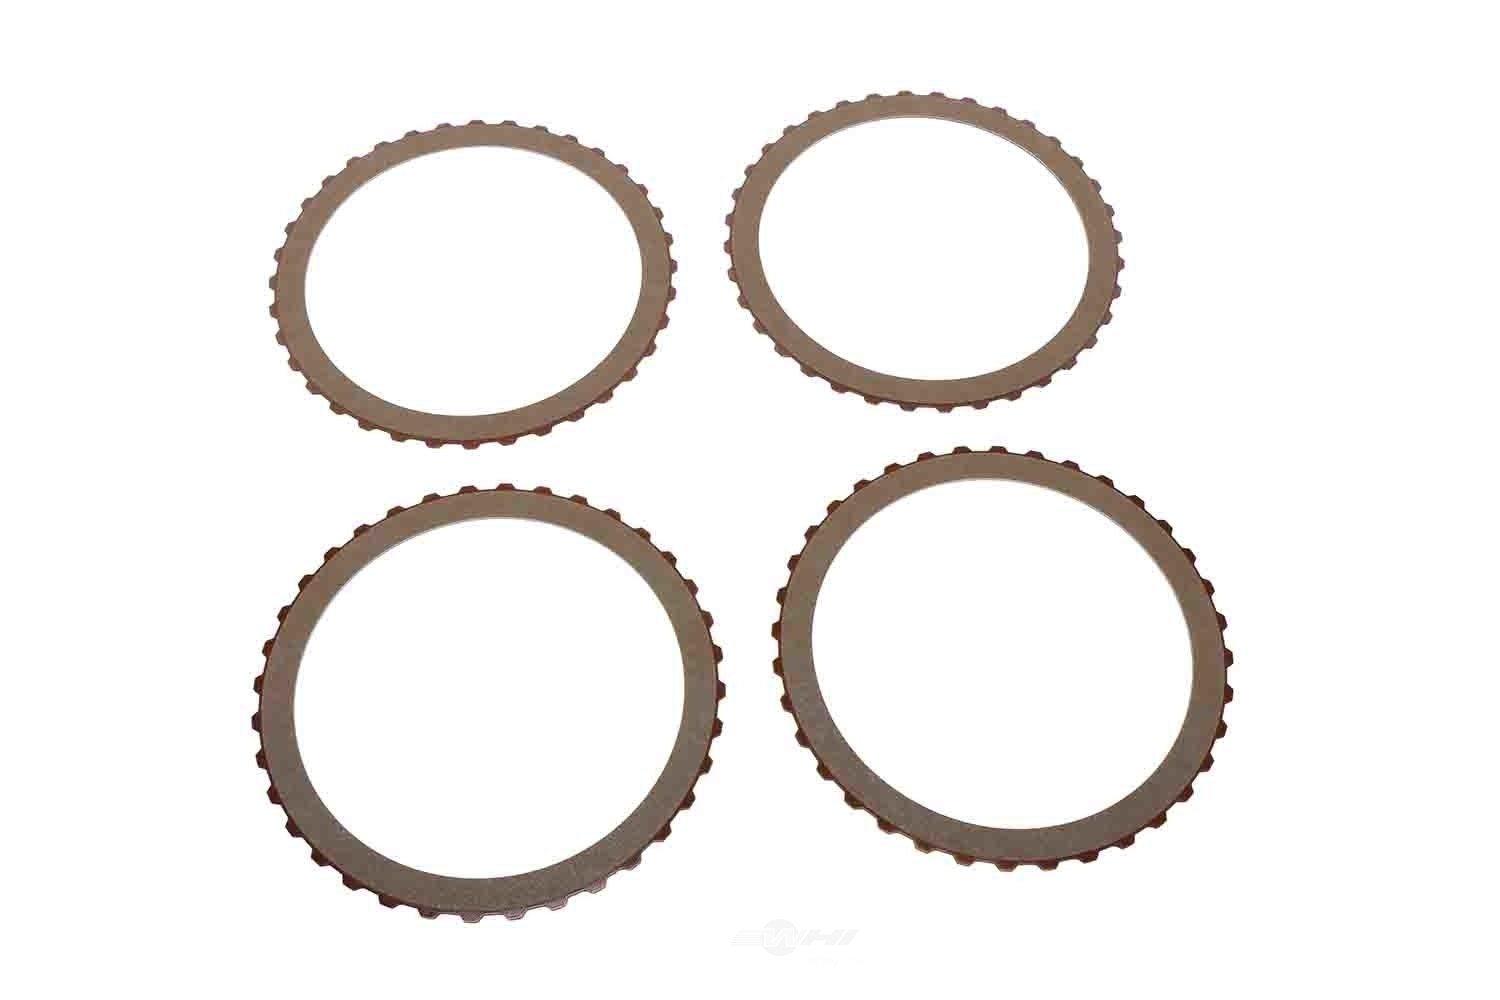 ACDELCO GM ORIGINAL EQUIPMENT - Transmission Clutch Friction Plate - DCB 24238954